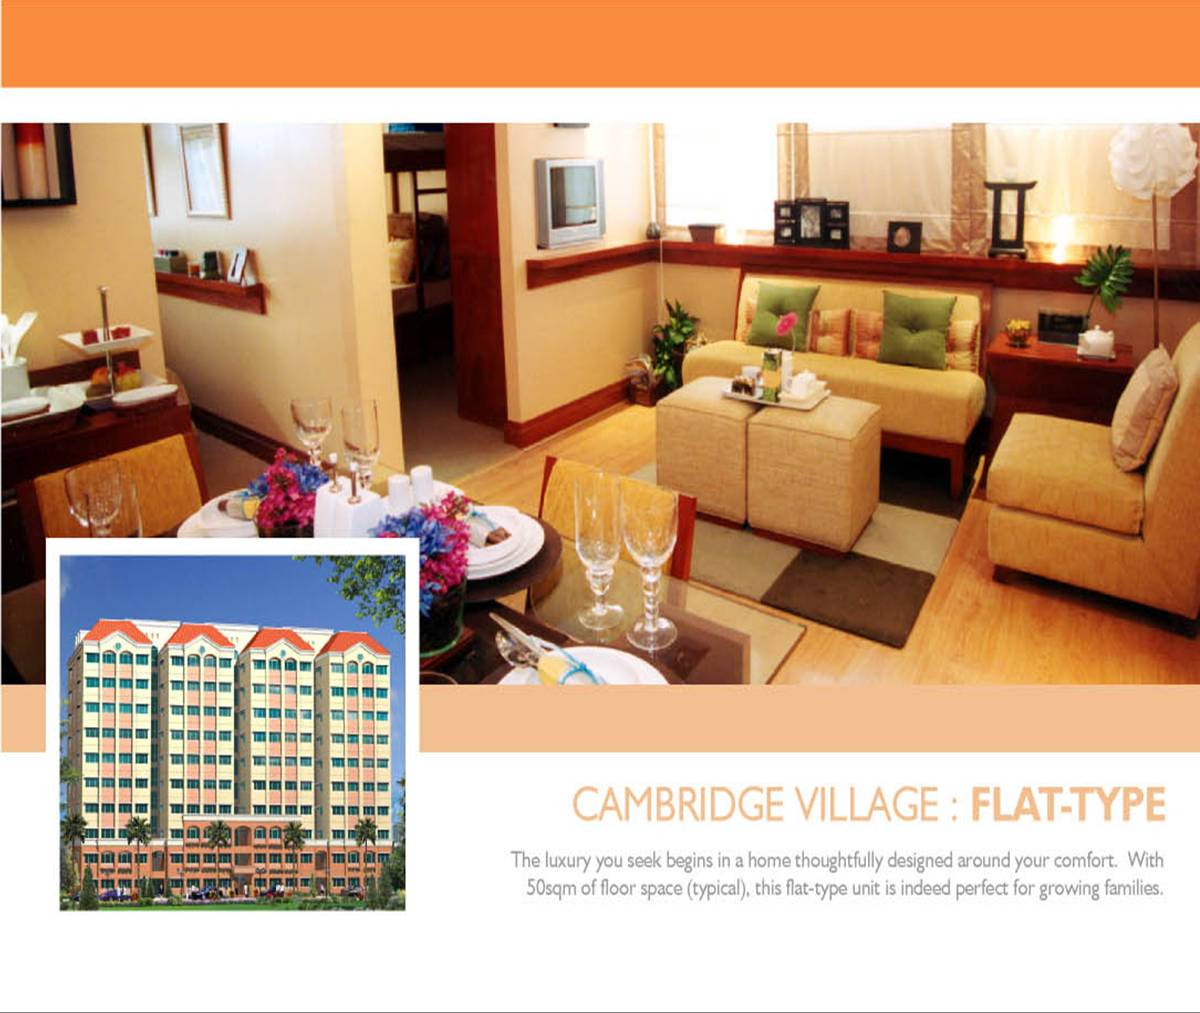 Affordable Condominium Investment, Flexible Terms of Payment, Flood Free Area. Condo Near Ortigas CBD